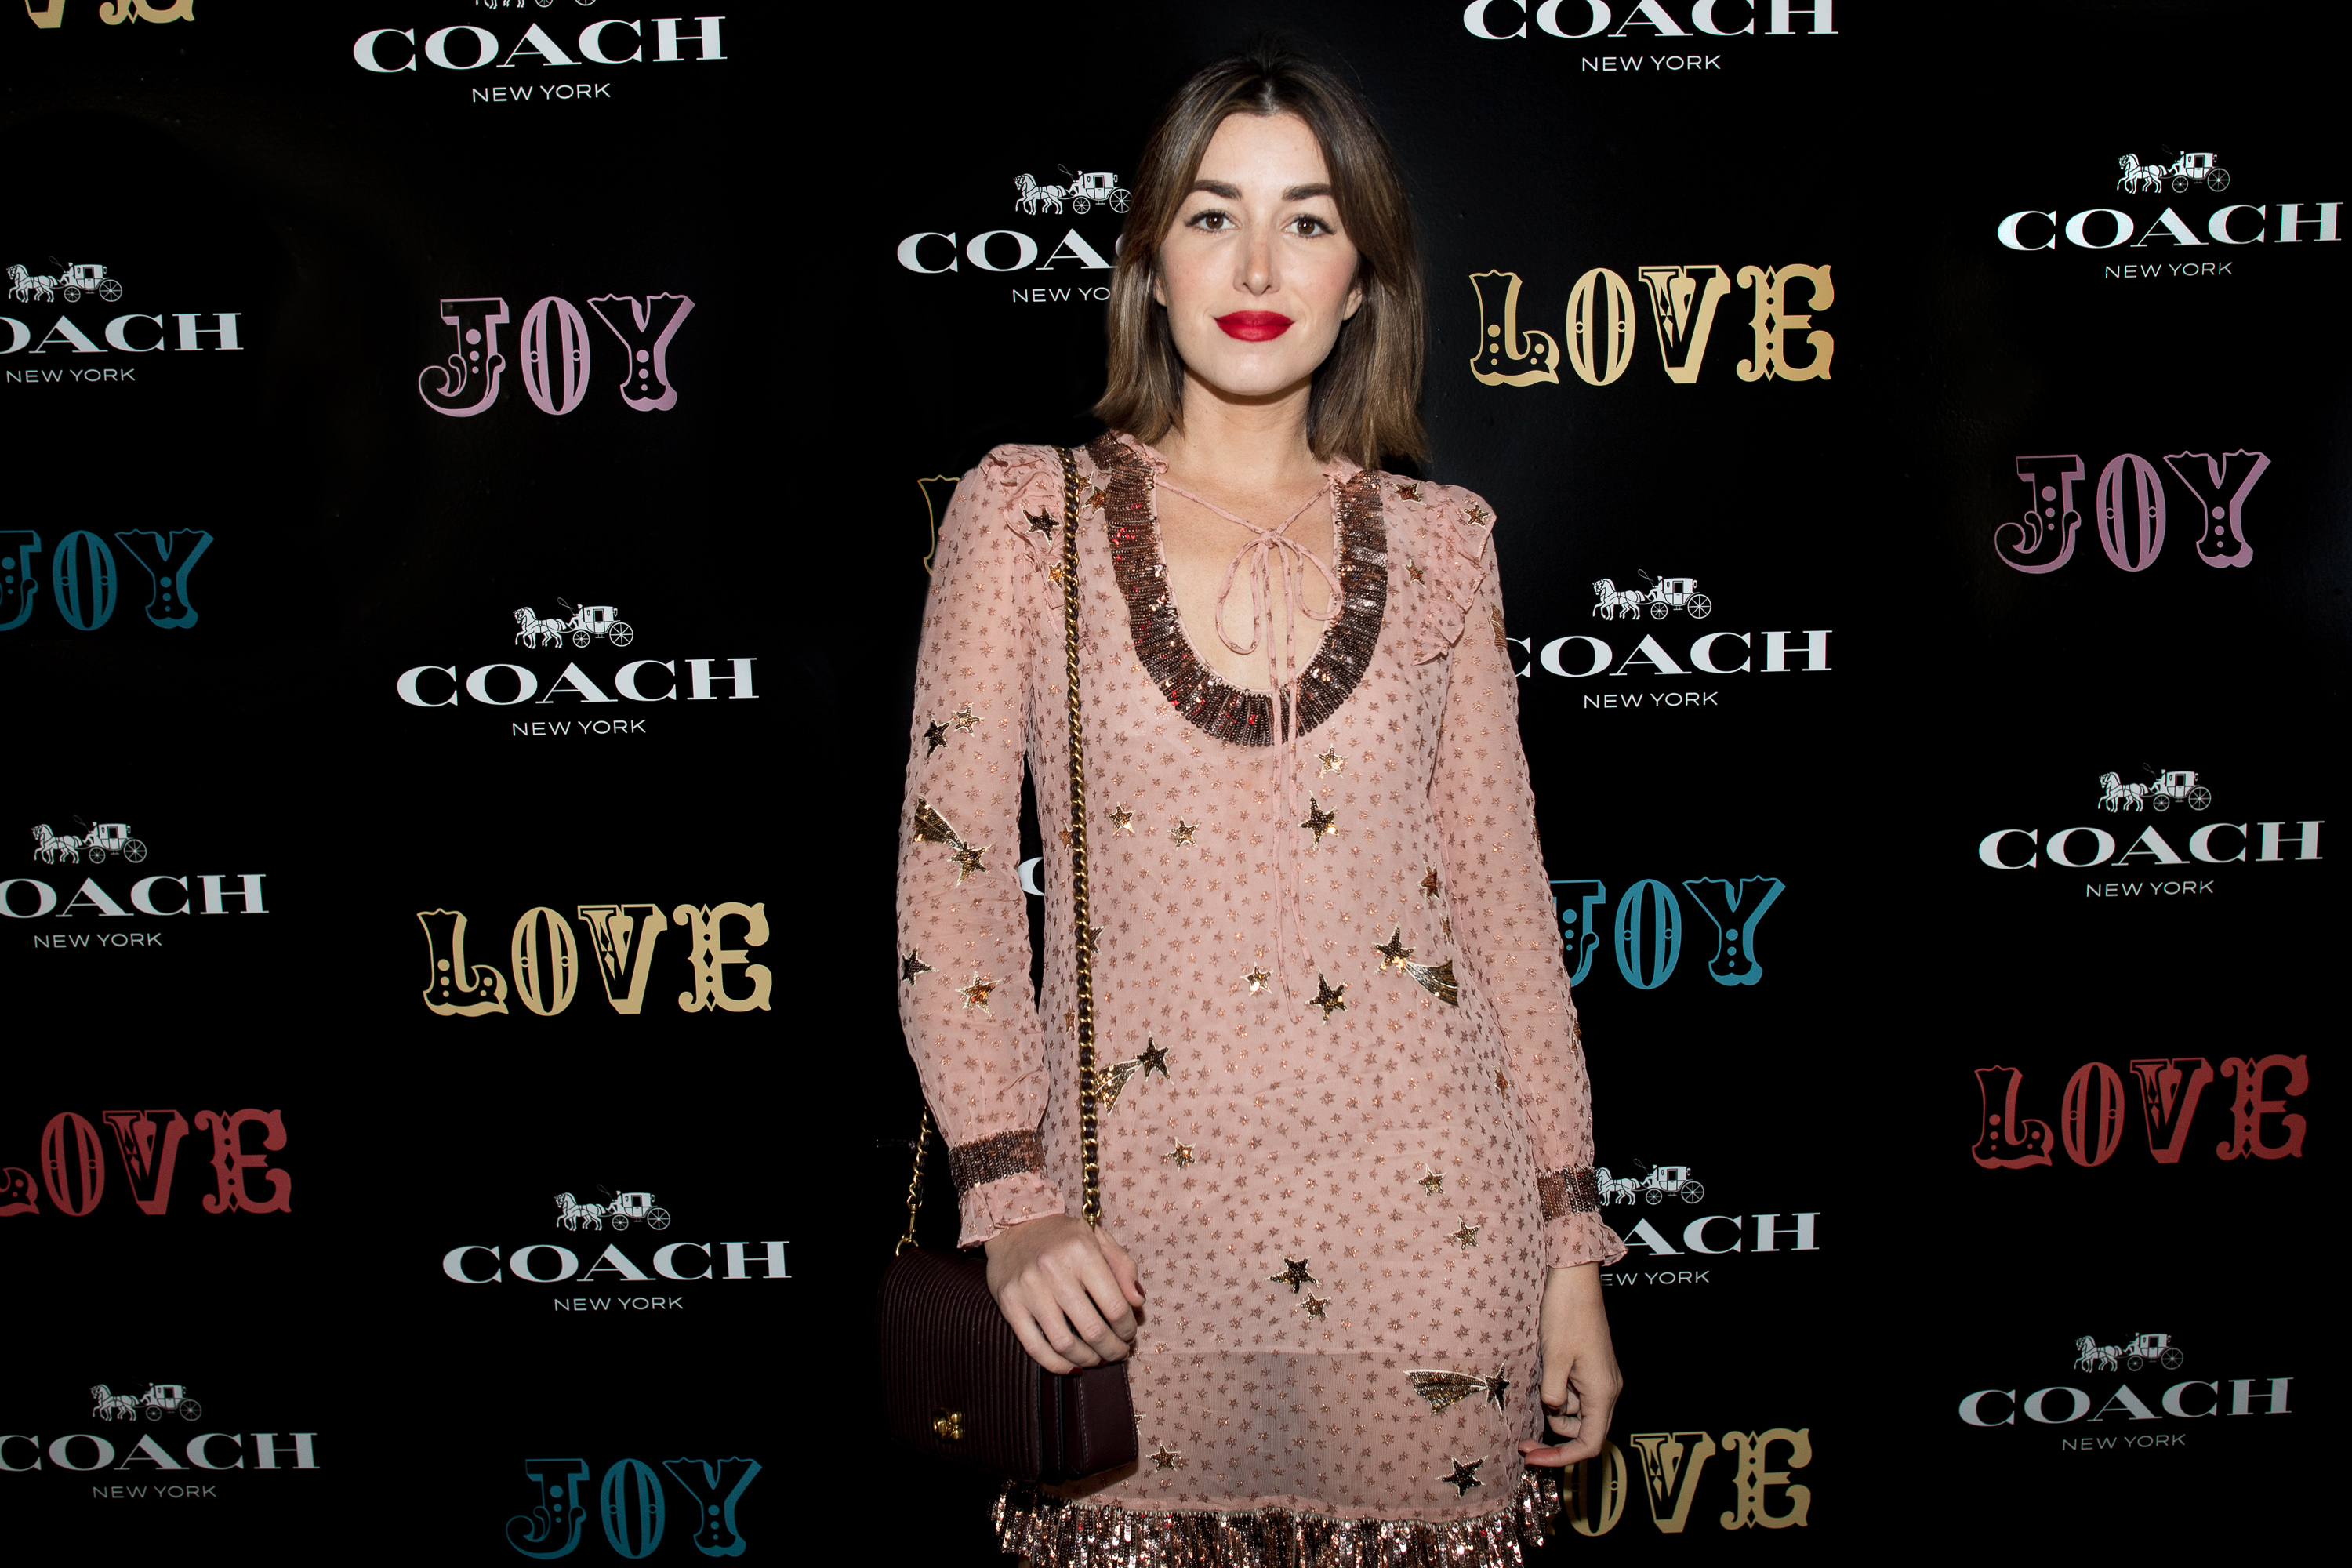 <p>Another week, another luxury store opening but Coach decided to step outside of the Sydney Westfield box to celebrate their latest boutique.</p> <p>To fit with the American label's recent image upgrade Coach called on every Instagram star worth their likes to trudge up the stairs of former rock haunt Kinsellas in Taylor Square.</p> <p>Squeezed into Stuart Vevers Western-influenced designs, the social set gravitated towards the photo walls to spread the word of the new store's arrivals, before moving onto the bowling ally and arcade games.</p> <p>Prepare for a bout of influencer influenza and click on.</p> <p>Carmen Hamilton at the Coach launch, Sydney.</p>